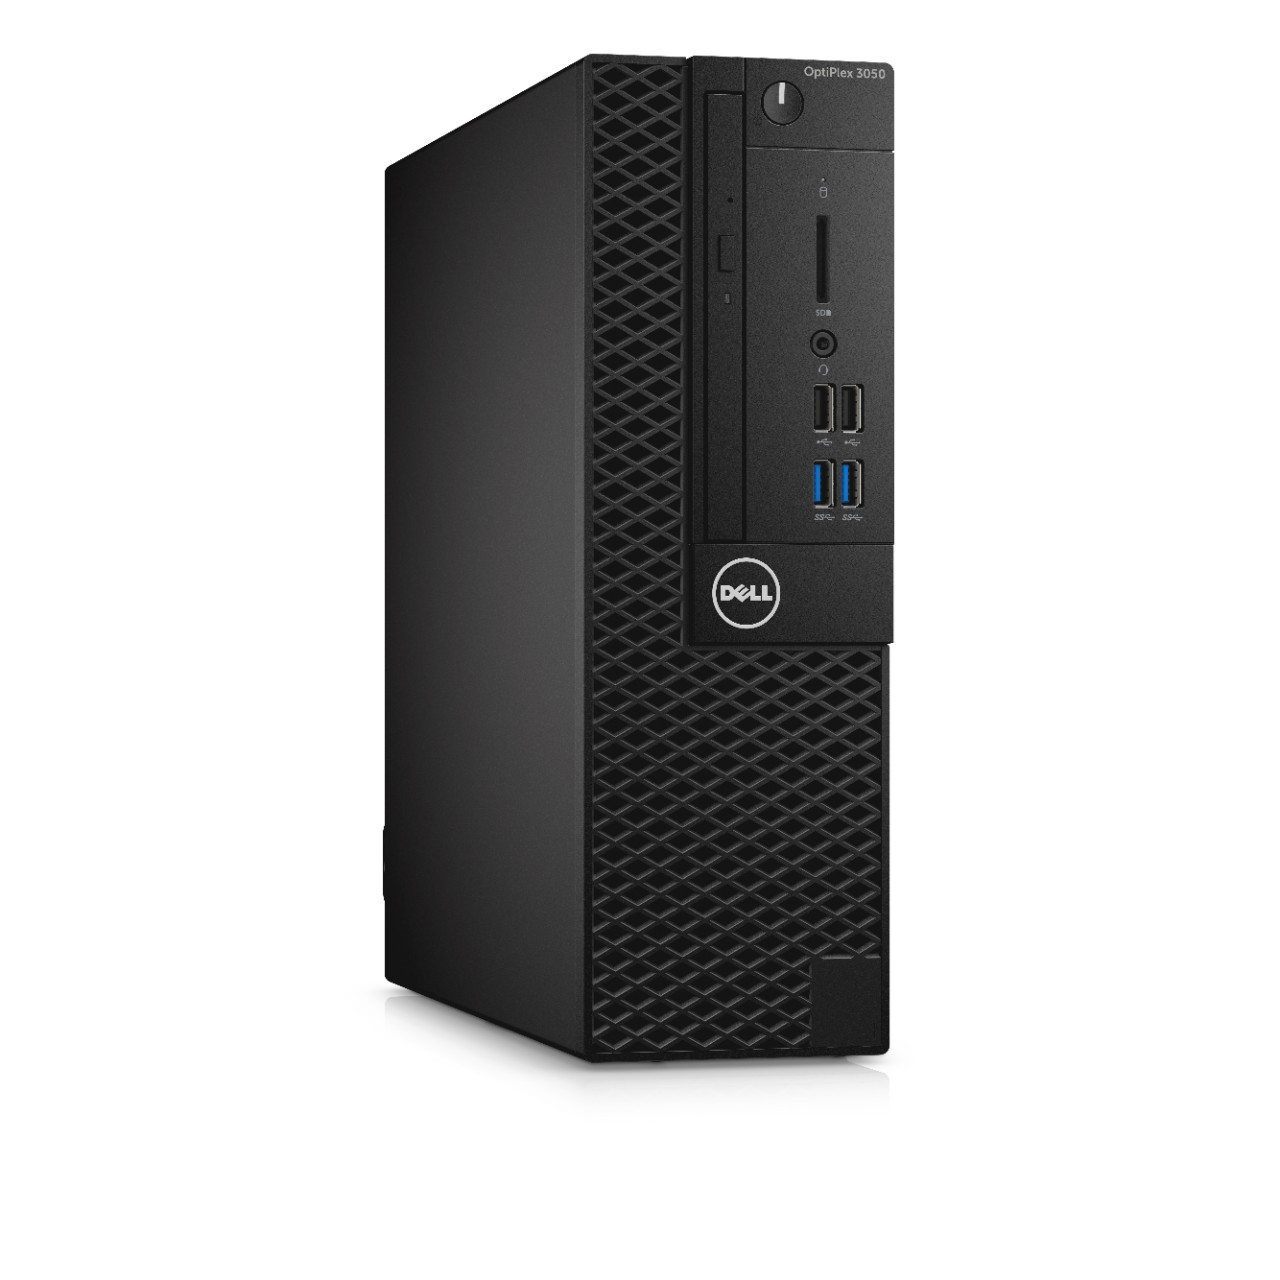 DELL OptiPlex SFF 3050 Core i5-7500/4GB/500GB/Intel HD/Win 10 Pro 64bit/3Yr NBD